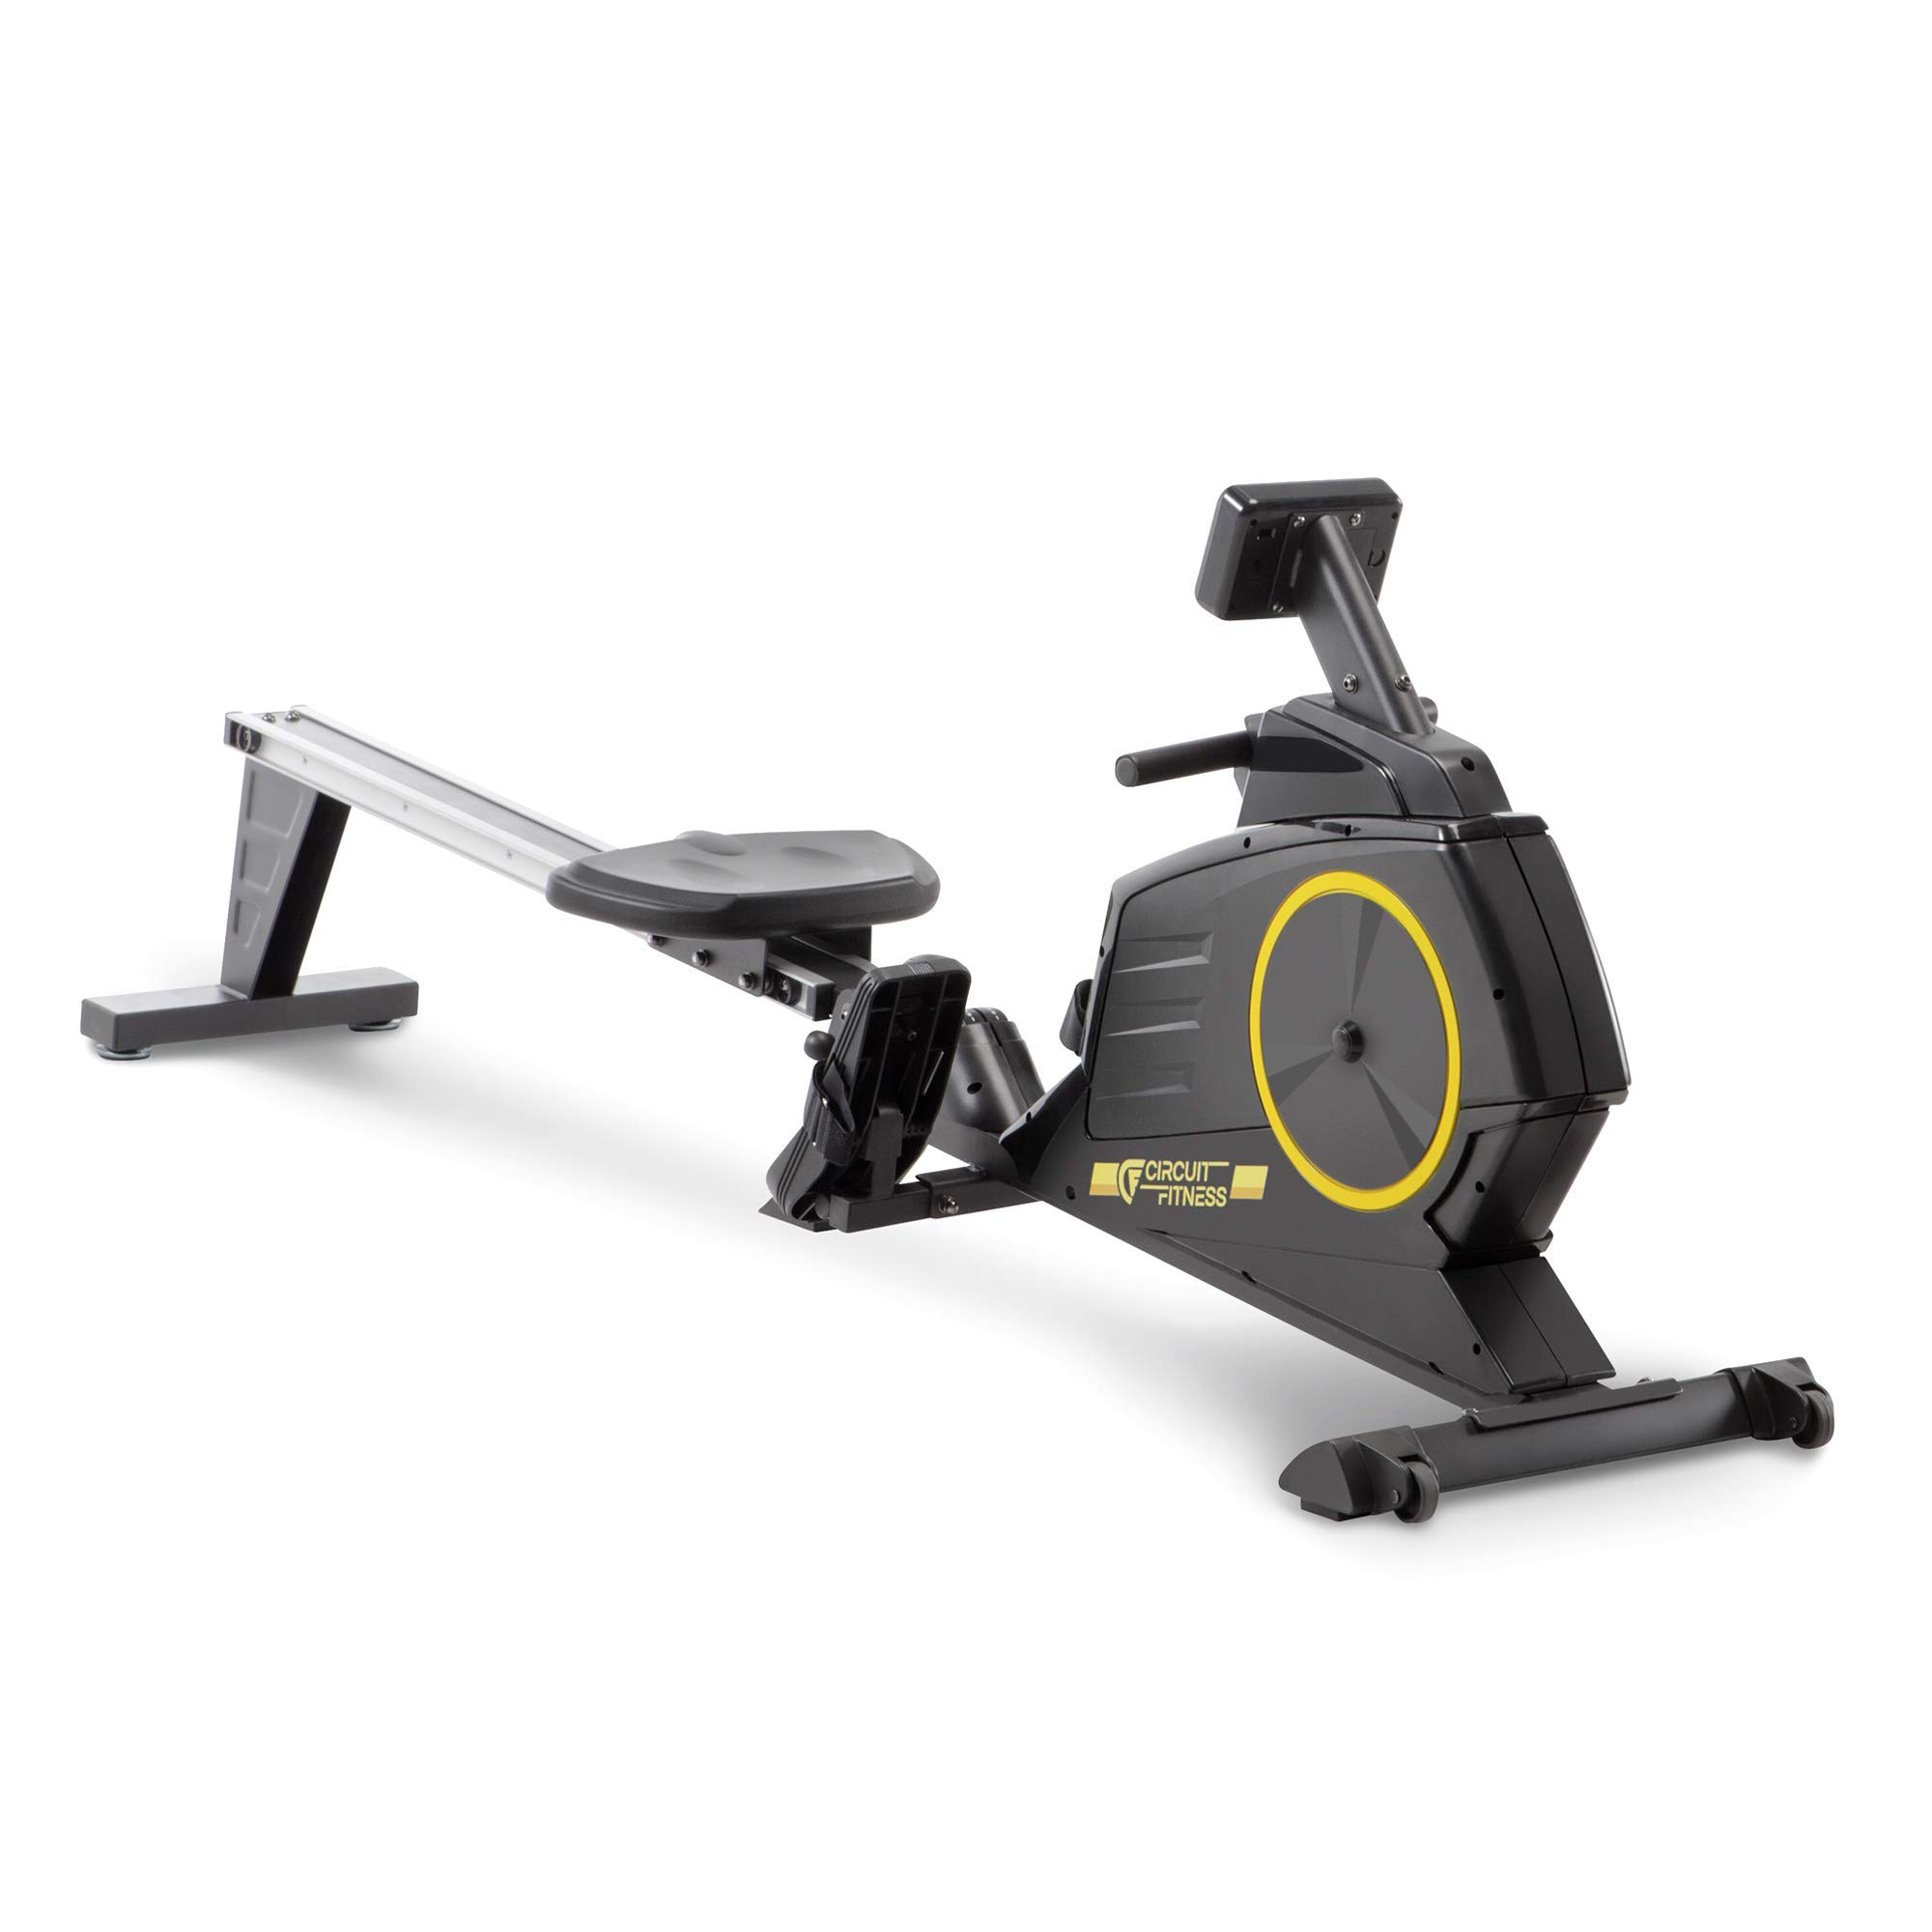 CIRCUIT FITNESS Circuit Fitness Deluxe Foldable Magnetic Rowing Machine with 8 Resistance Settings & Transport Wheels (AMZ-986RW)